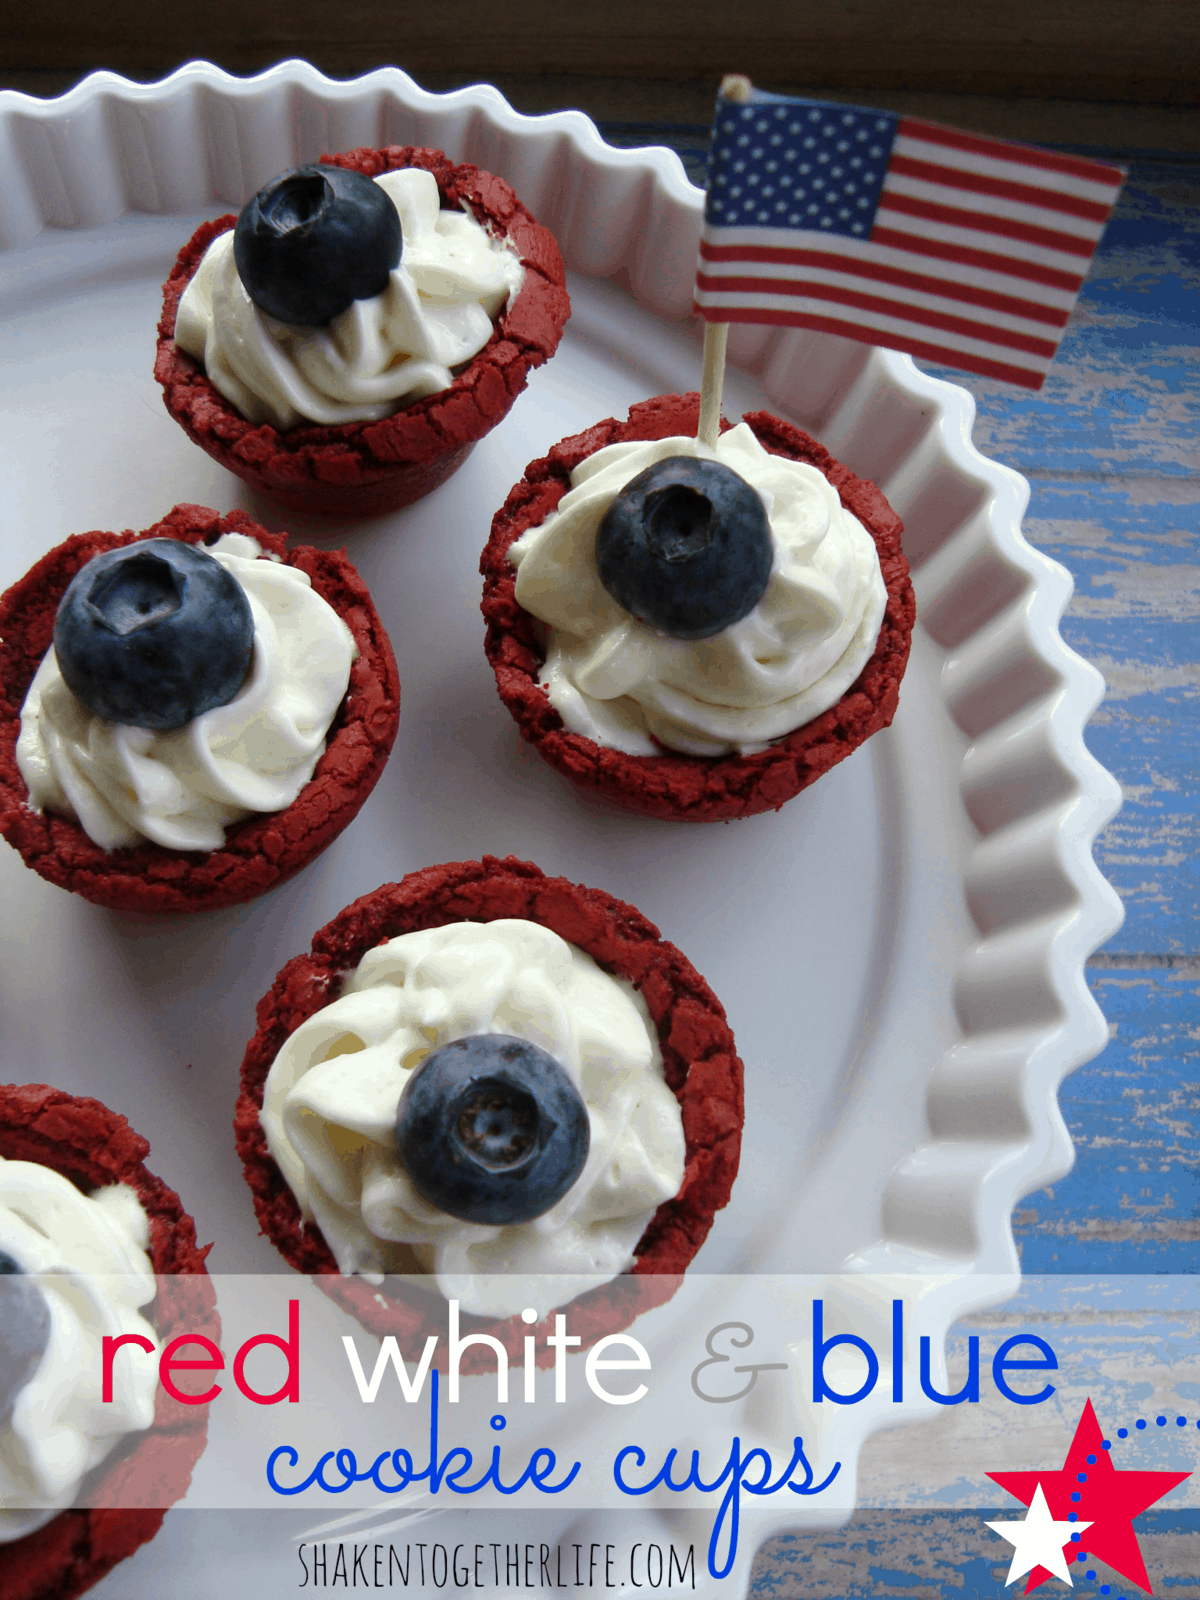 Easy red, white & blue cookie cups at shakentogetherlife.com